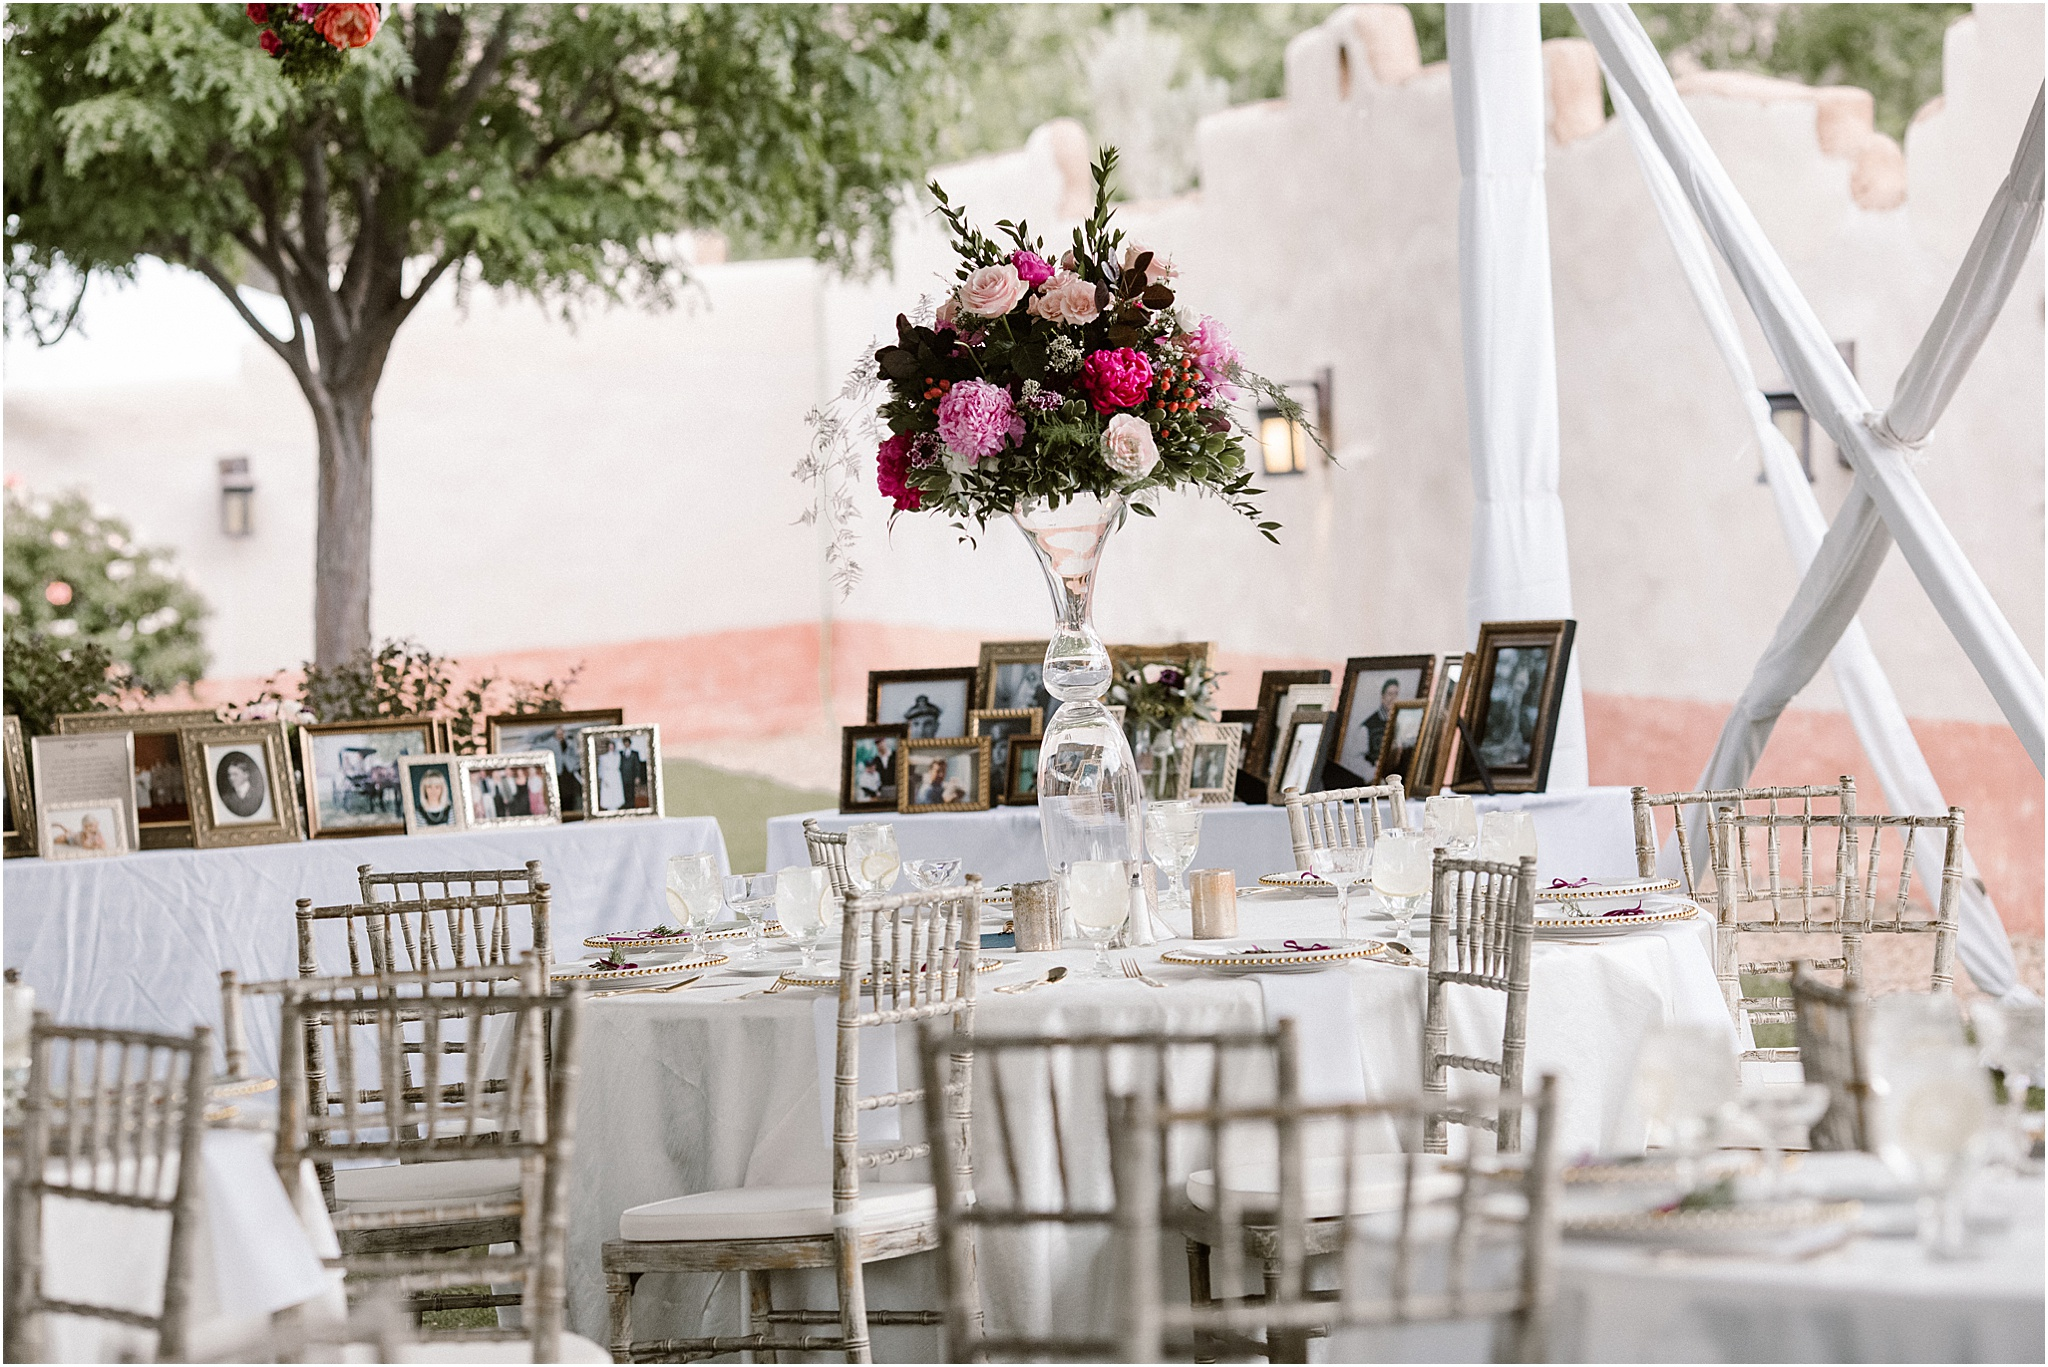 JENNA_JEROME_BLUE ROSE PHOTOGRAPHY_ABQ WEDDING_45